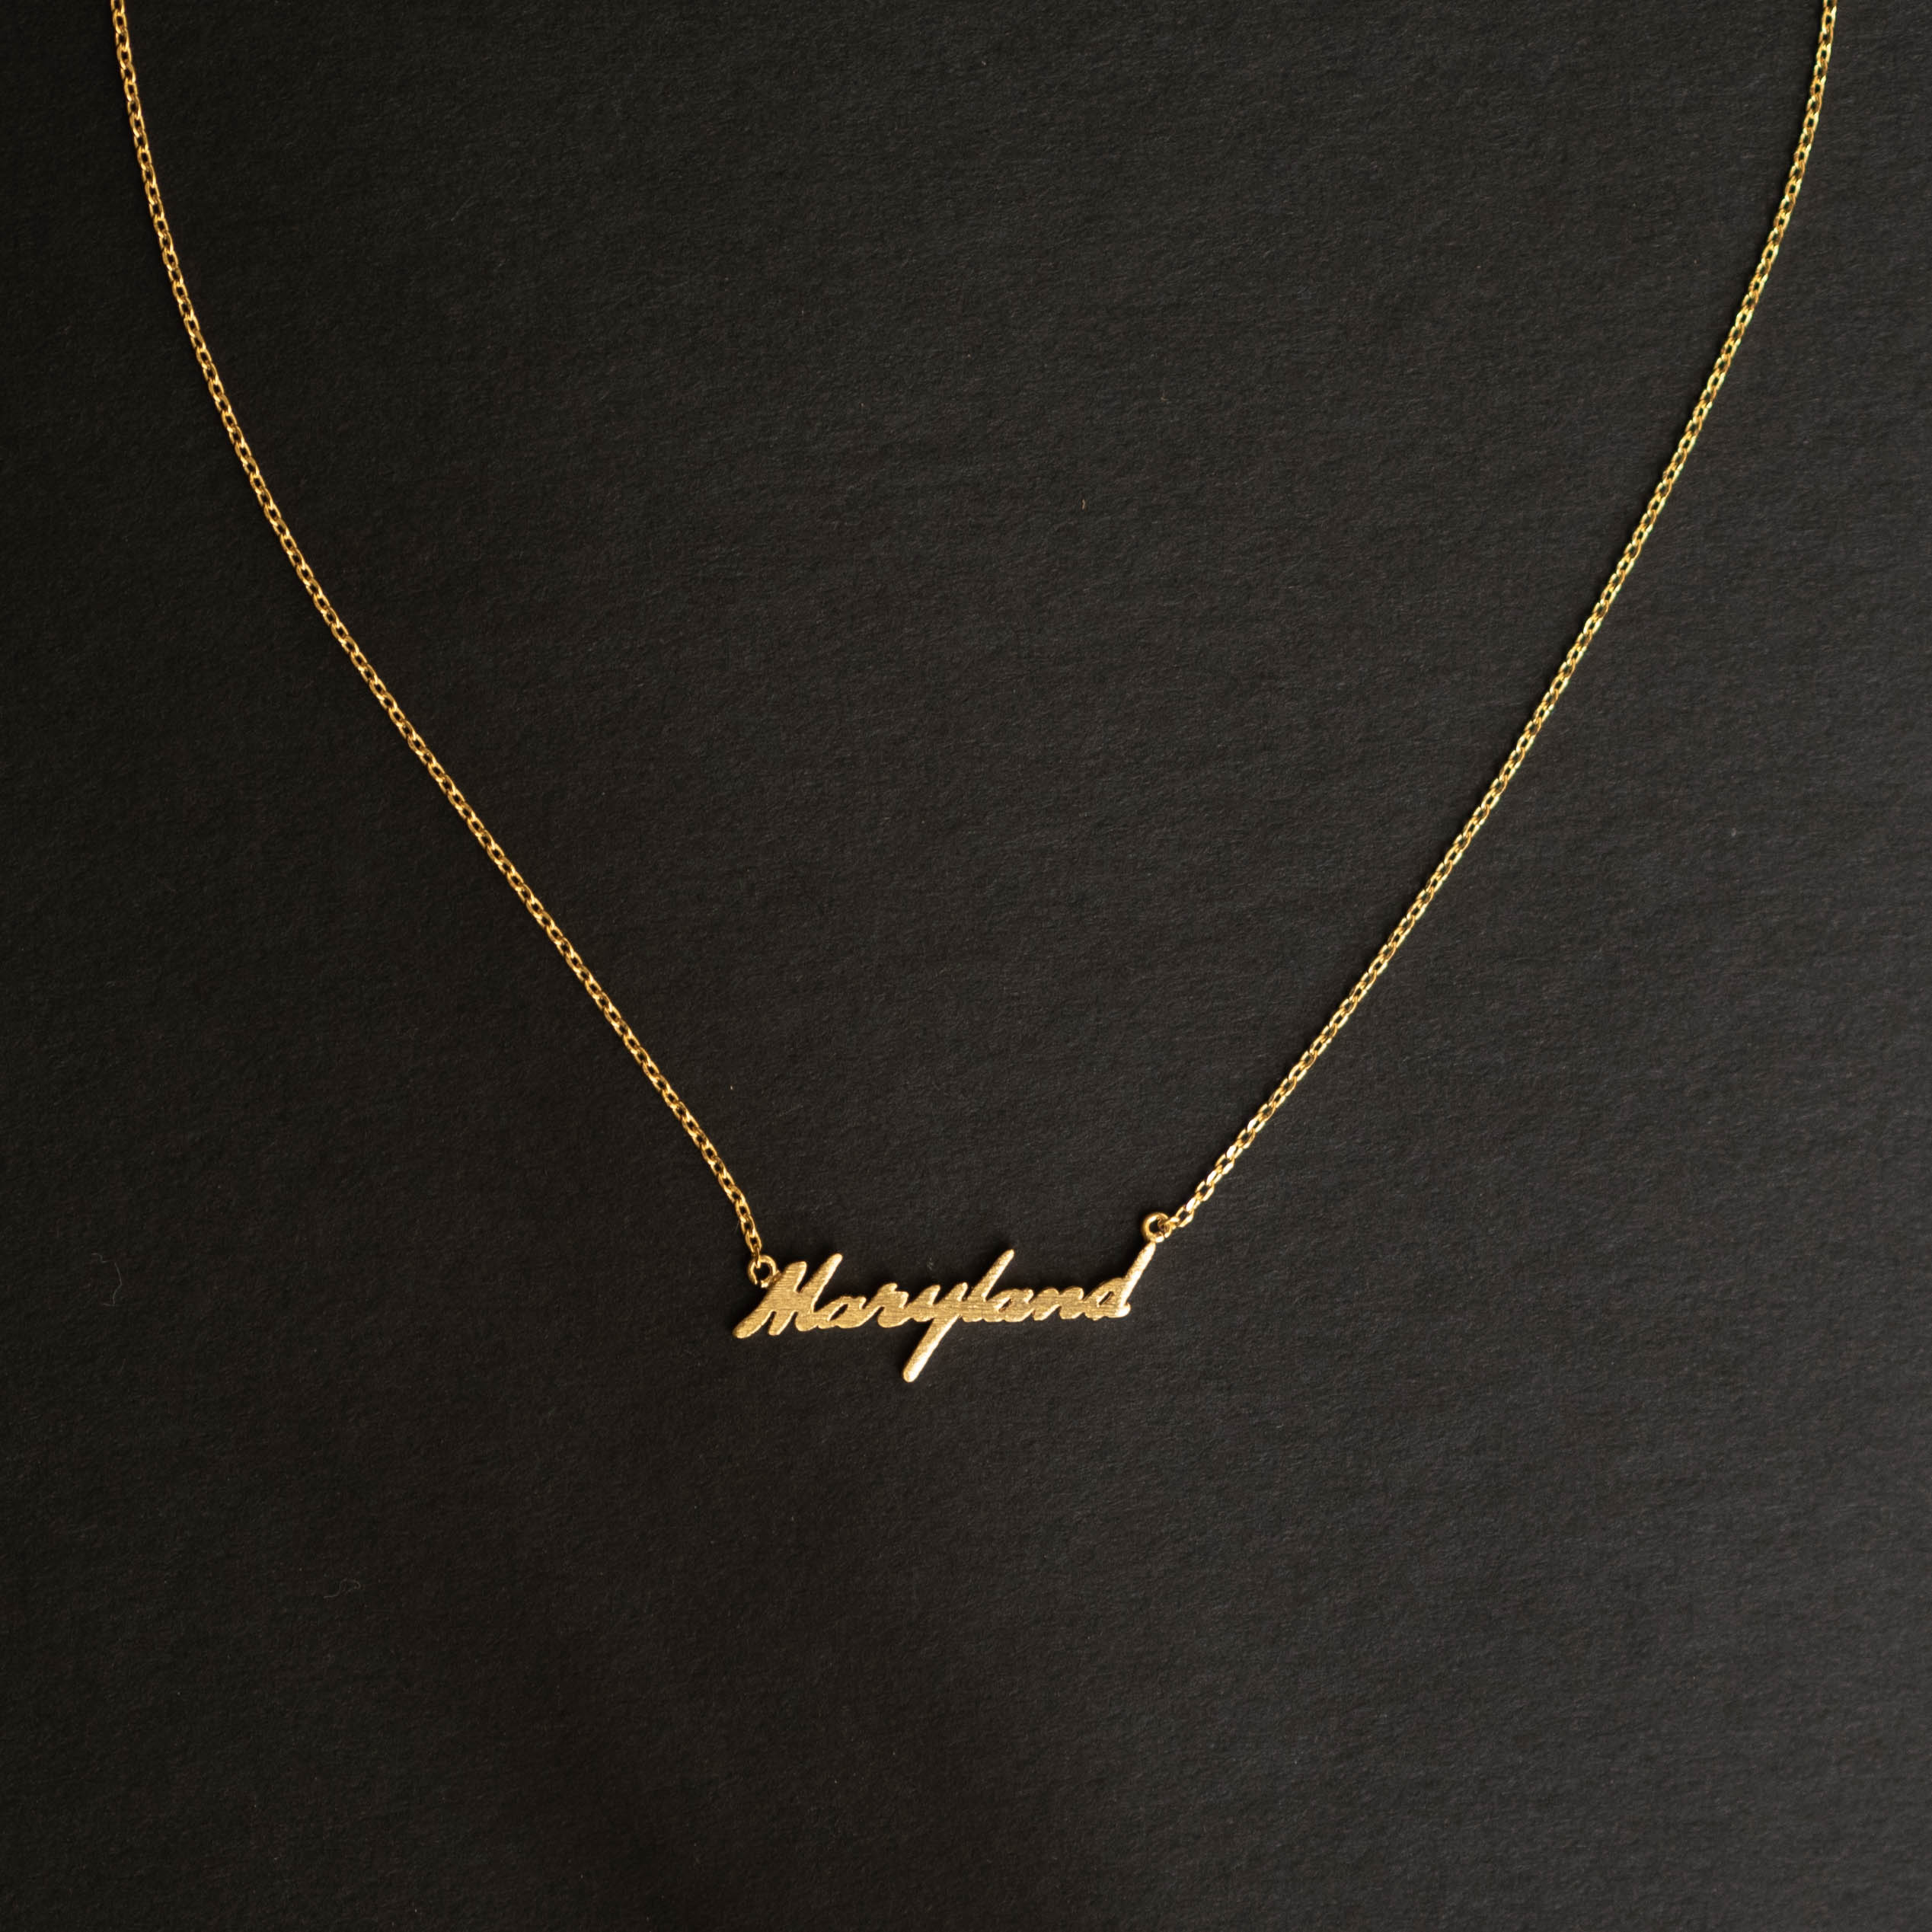 Maryland Script Necklace